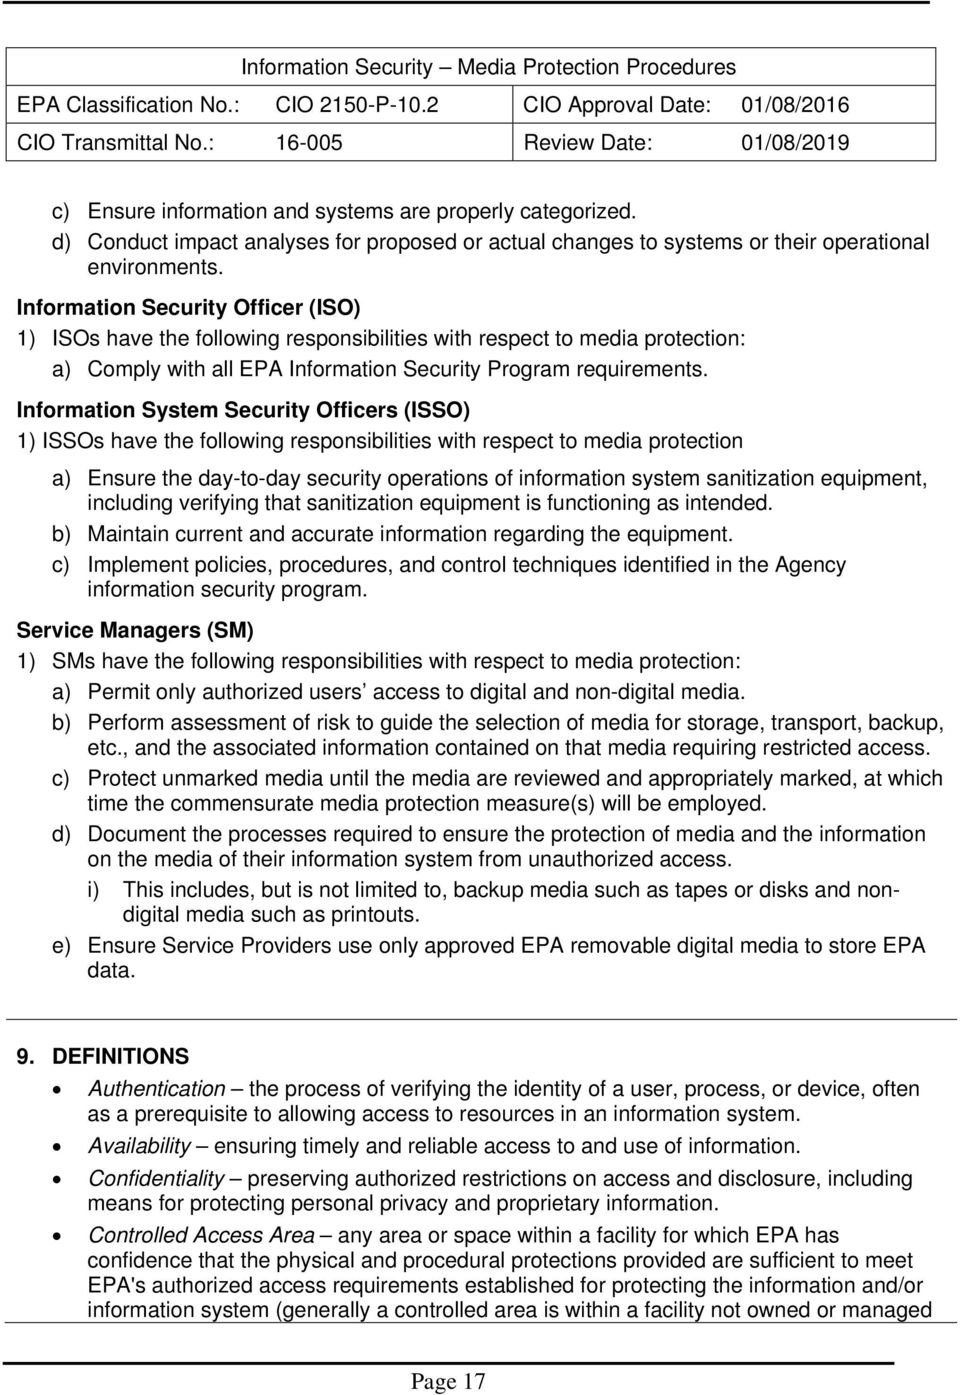 Information System Security Officers (ISSO) 1) ISSOs have the following responsibilities with respect to media protection a) Ensure the day-to-day security operations of information system